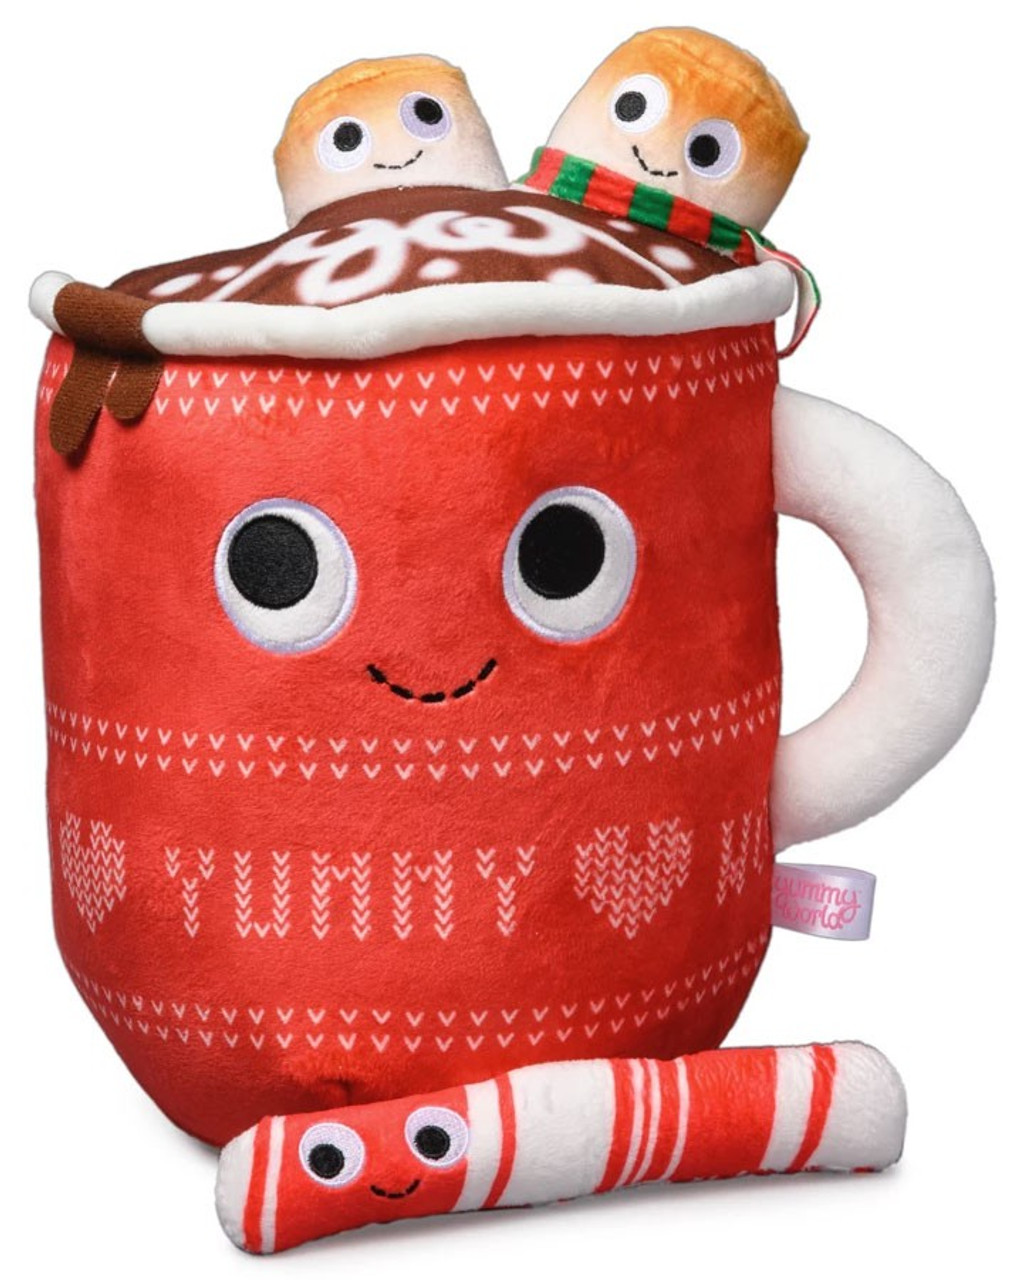 Yummy World Judy Hot Cocoa With Marshmallows Peppermint Stick 11 Inch Large Plush - hot coco pic roblox